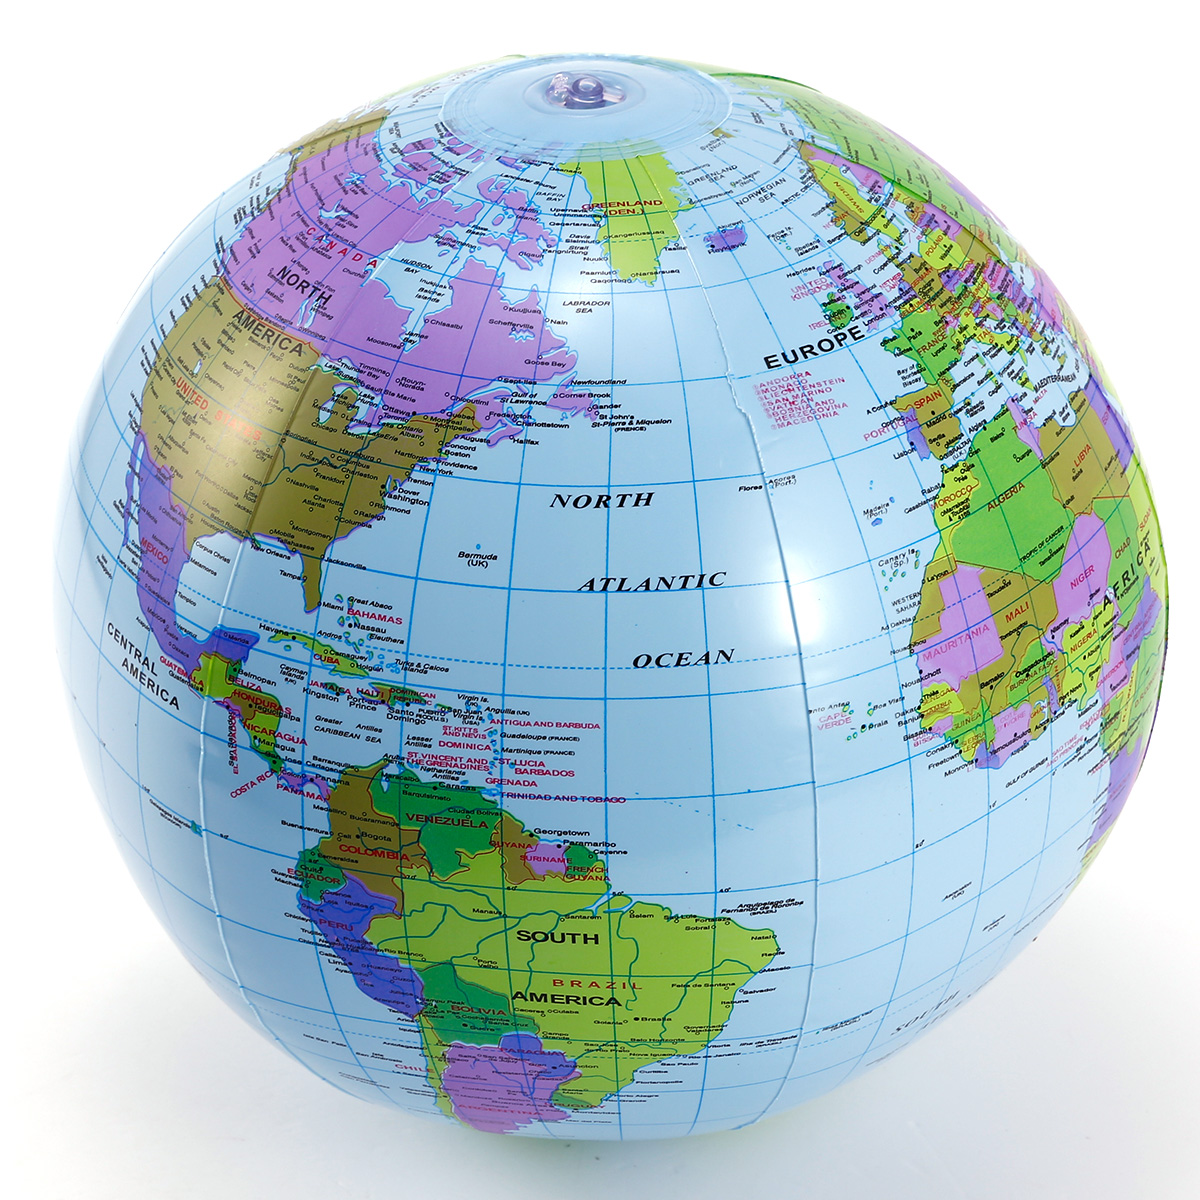 Inflatable globe blow up world map atlas ball earth 40cm fancy dress inflatable globe blow up world map atlas ball earth 40cm fancy dress toy fun new gumiabroncs Image collections